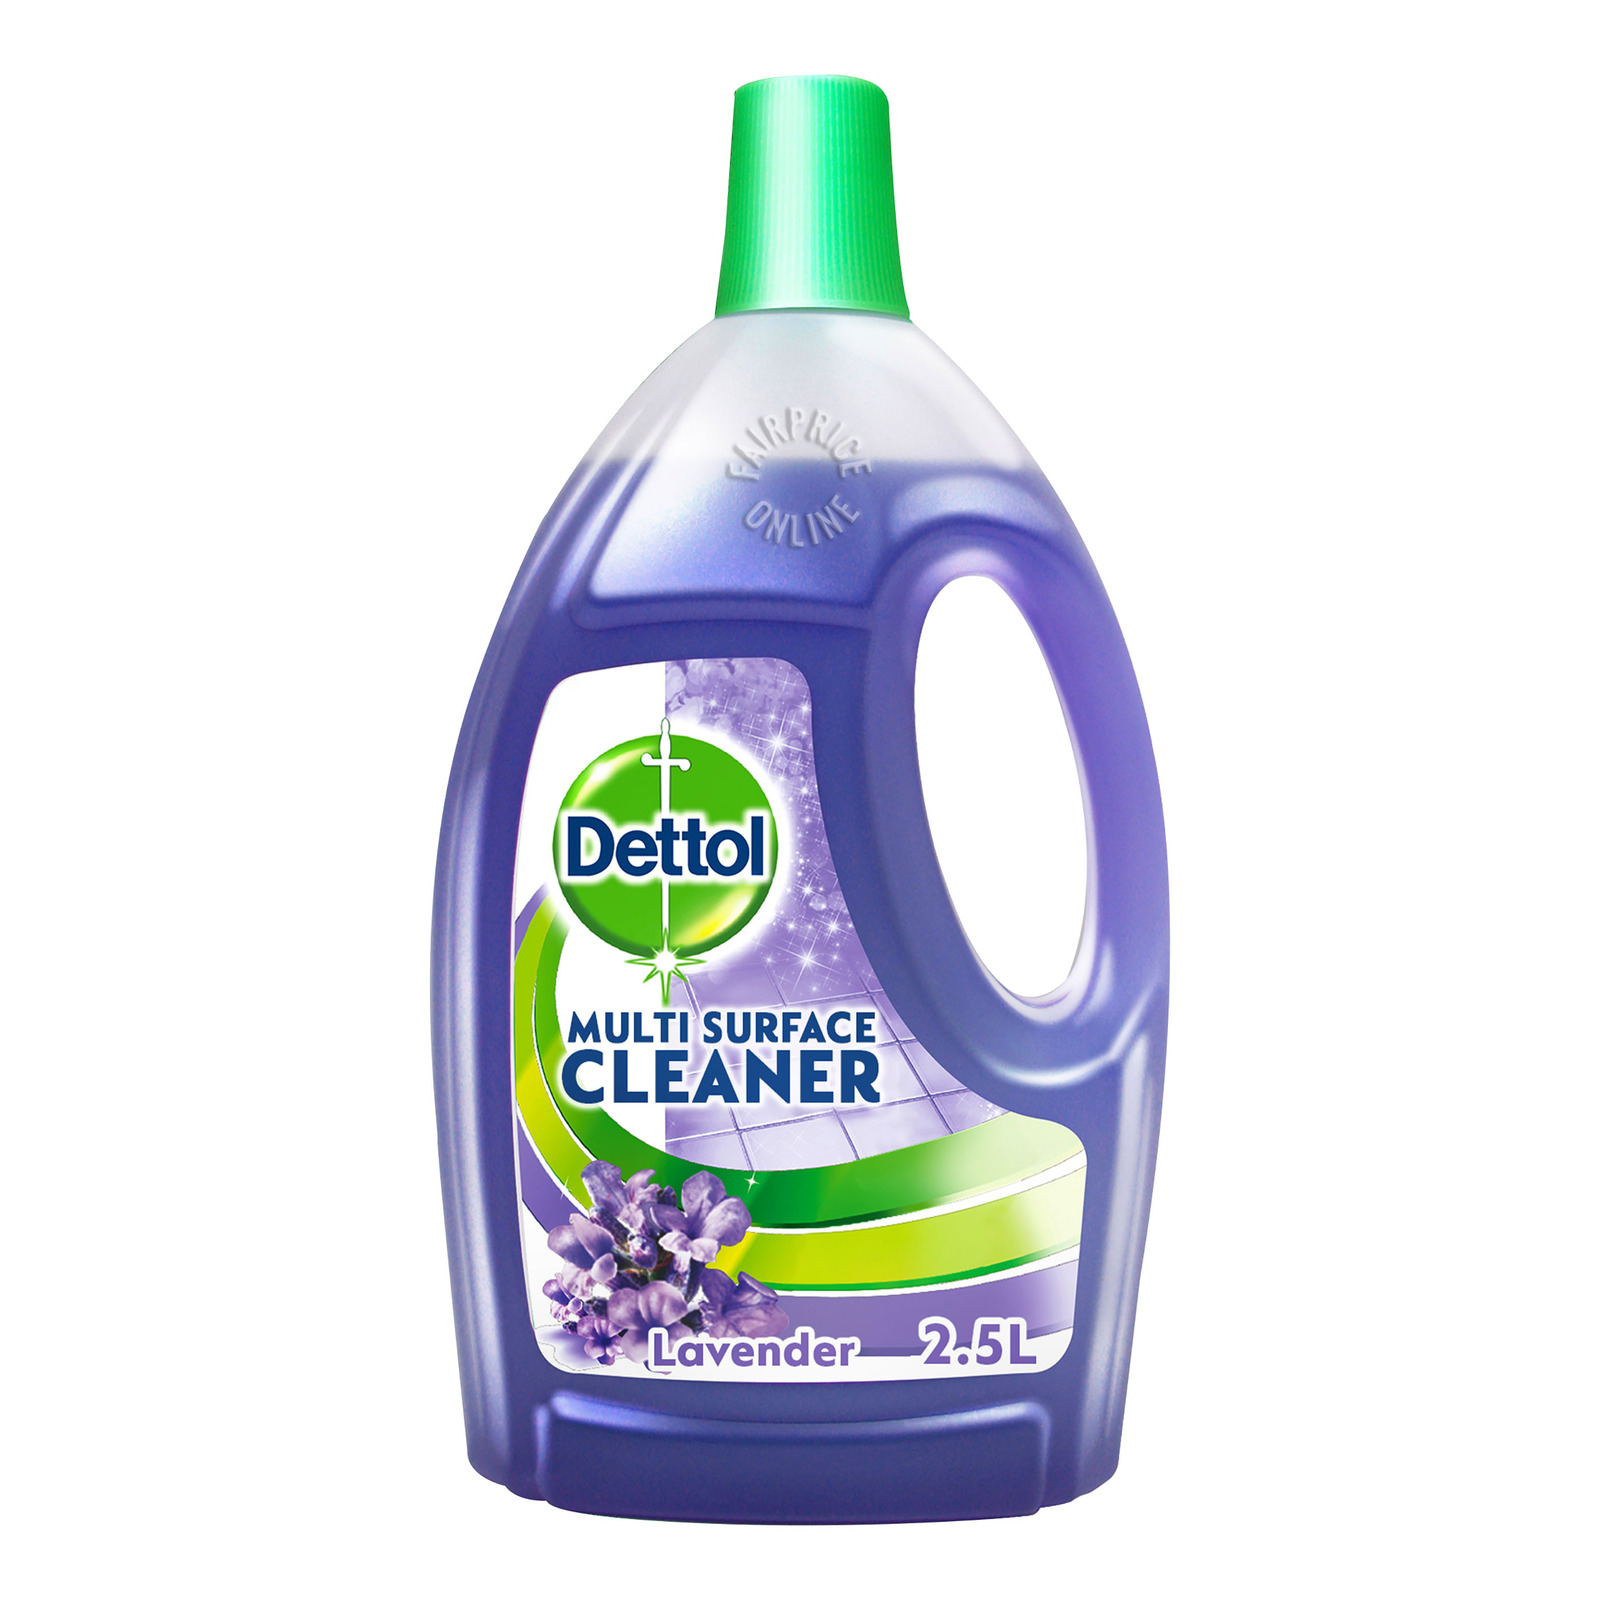 Dettol 4 in 1 Multi Surface Cleaner - Lavender